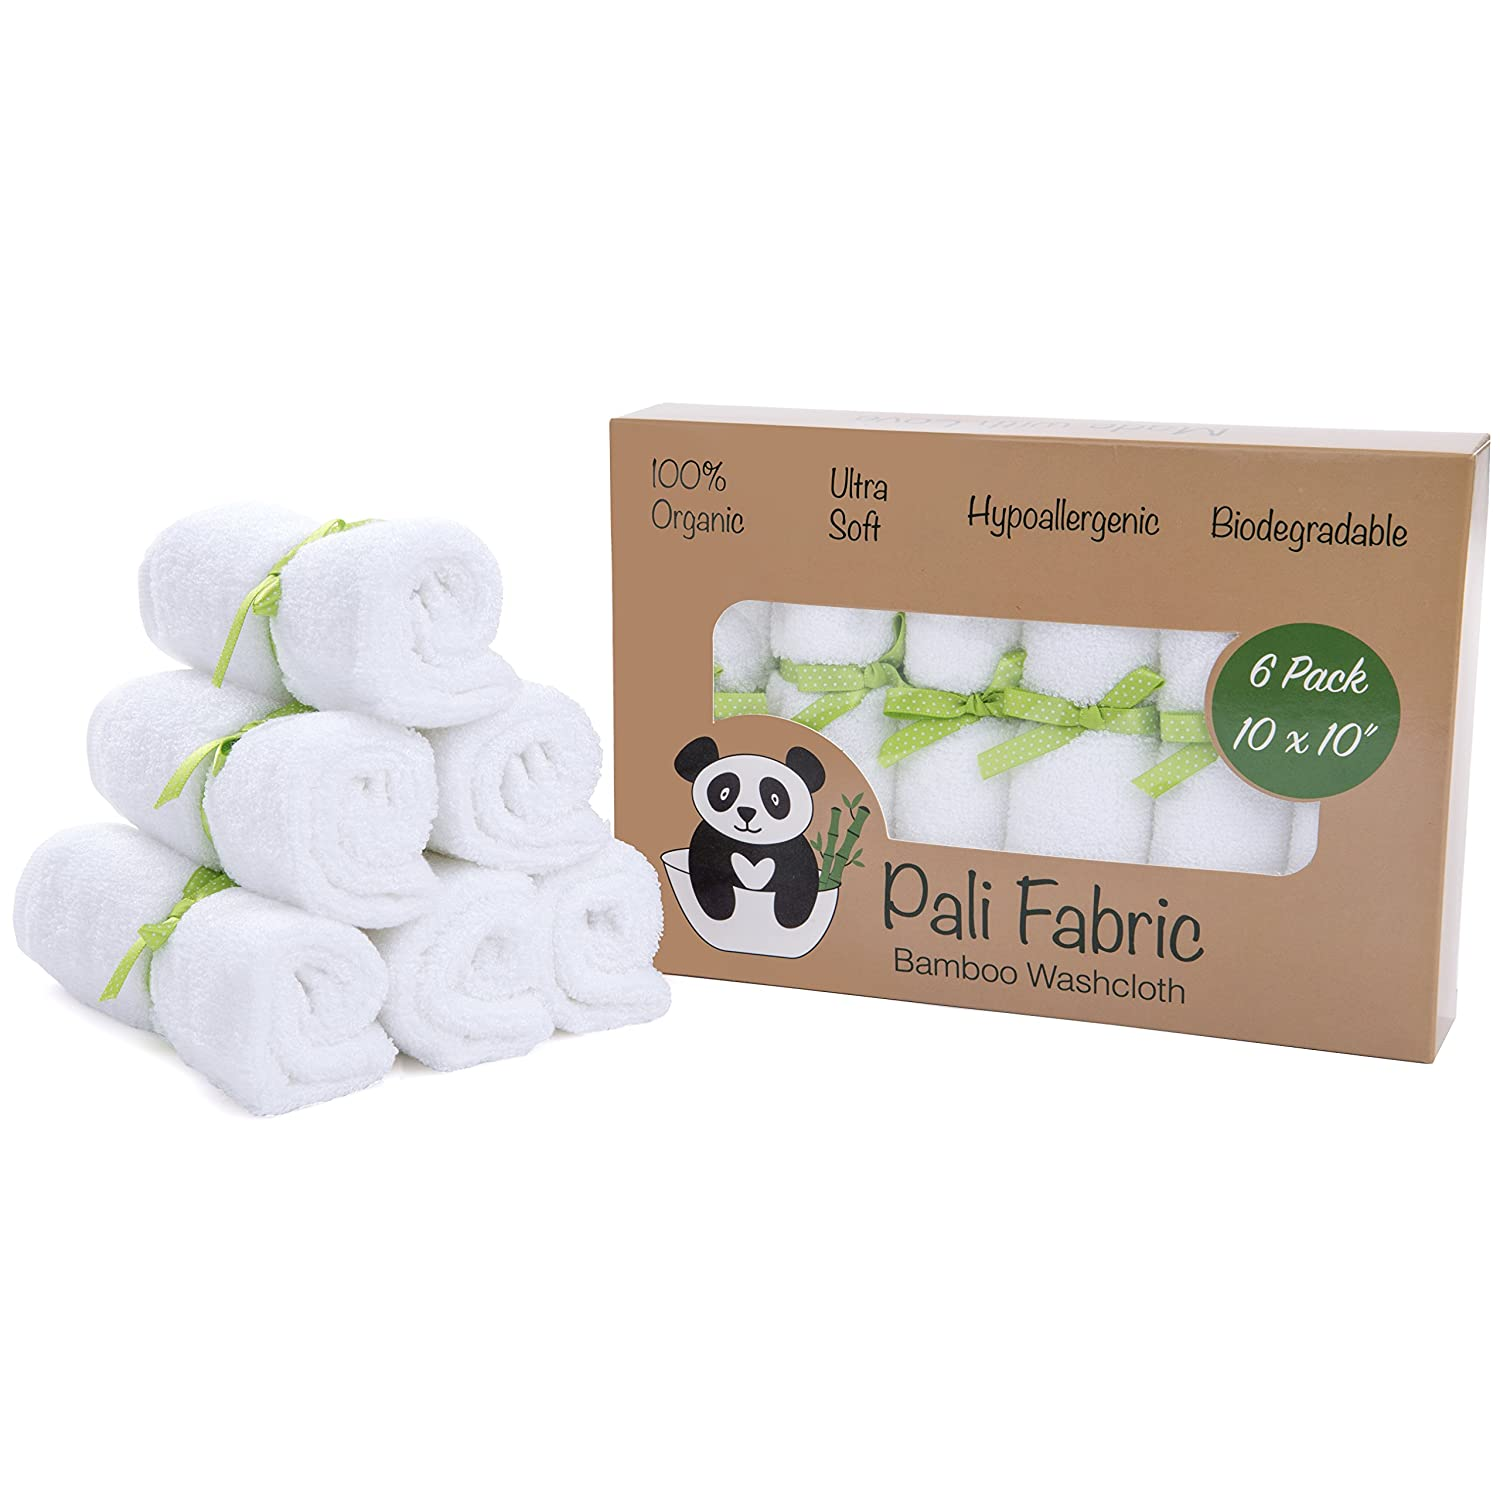 Organic Bamboo Washcloths by Pali Fabric | 100% Organic Baby Bamboo Washcloths | Antibacterial and Hypoallergenic | Ultra Soft Bamboo Washcloths for Sensitive Skin | 10x10 Inch (6 Pack)